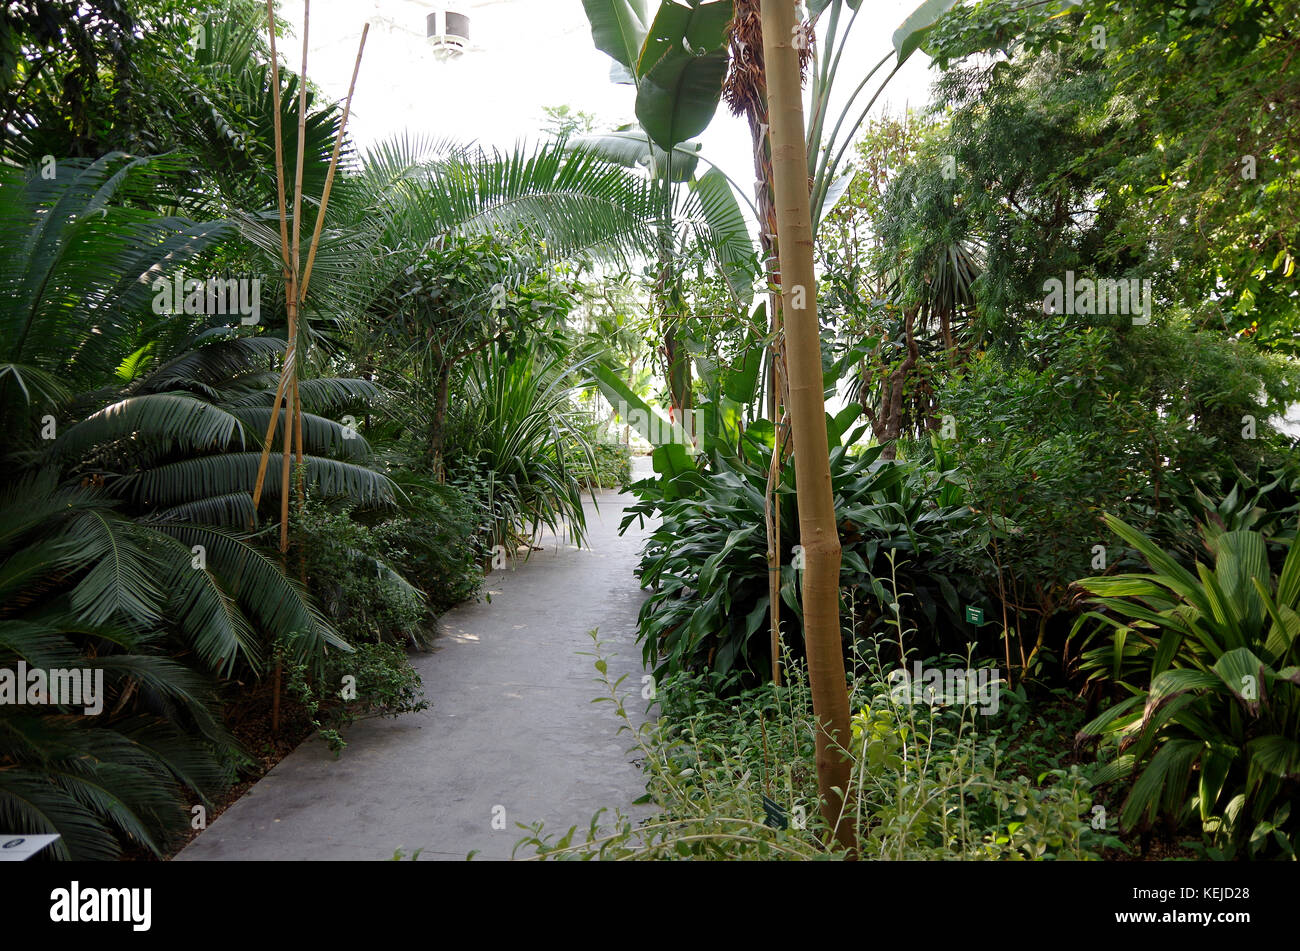 Orto Botanico di Padova, Padua Botanical garden, the world's oldest, in Padua, Italy, Interior of sub-humid - Stock Image